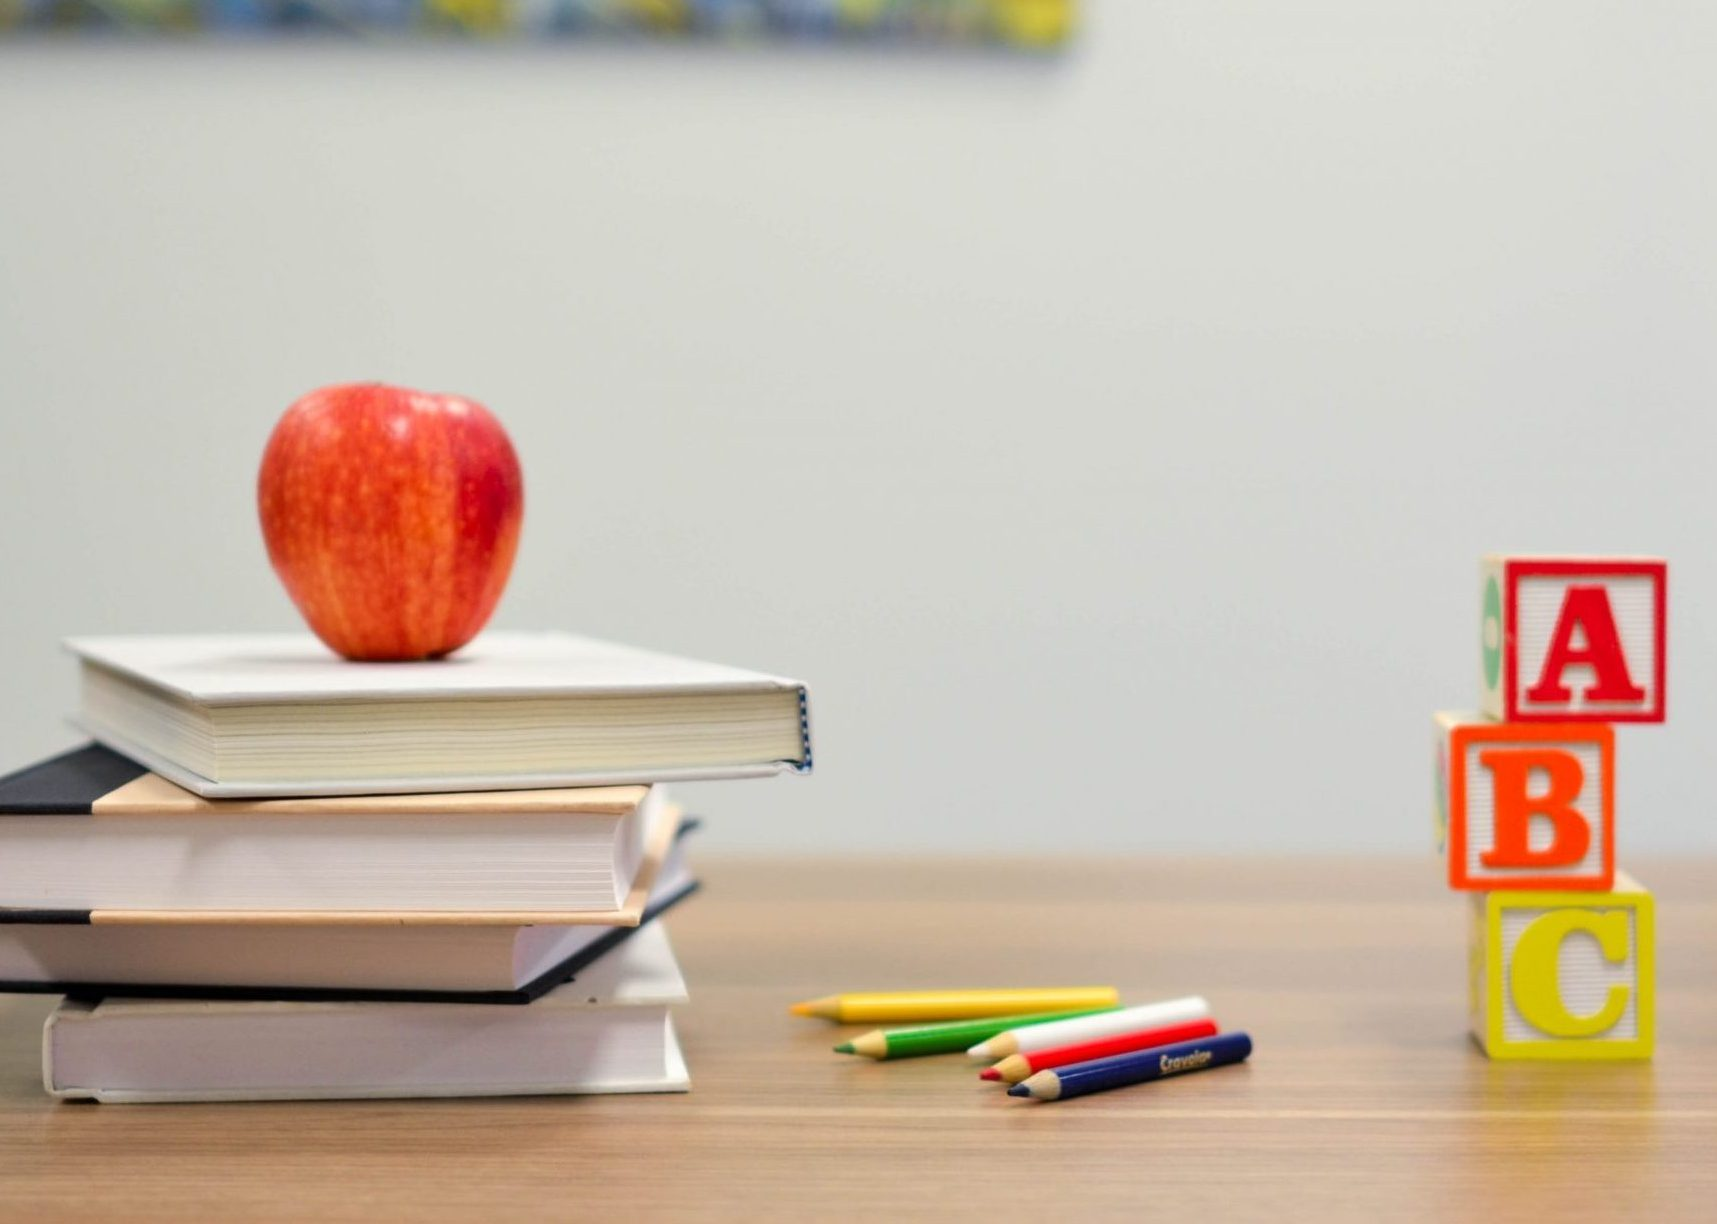 Desk with apple on books, colored pencils, and blocks